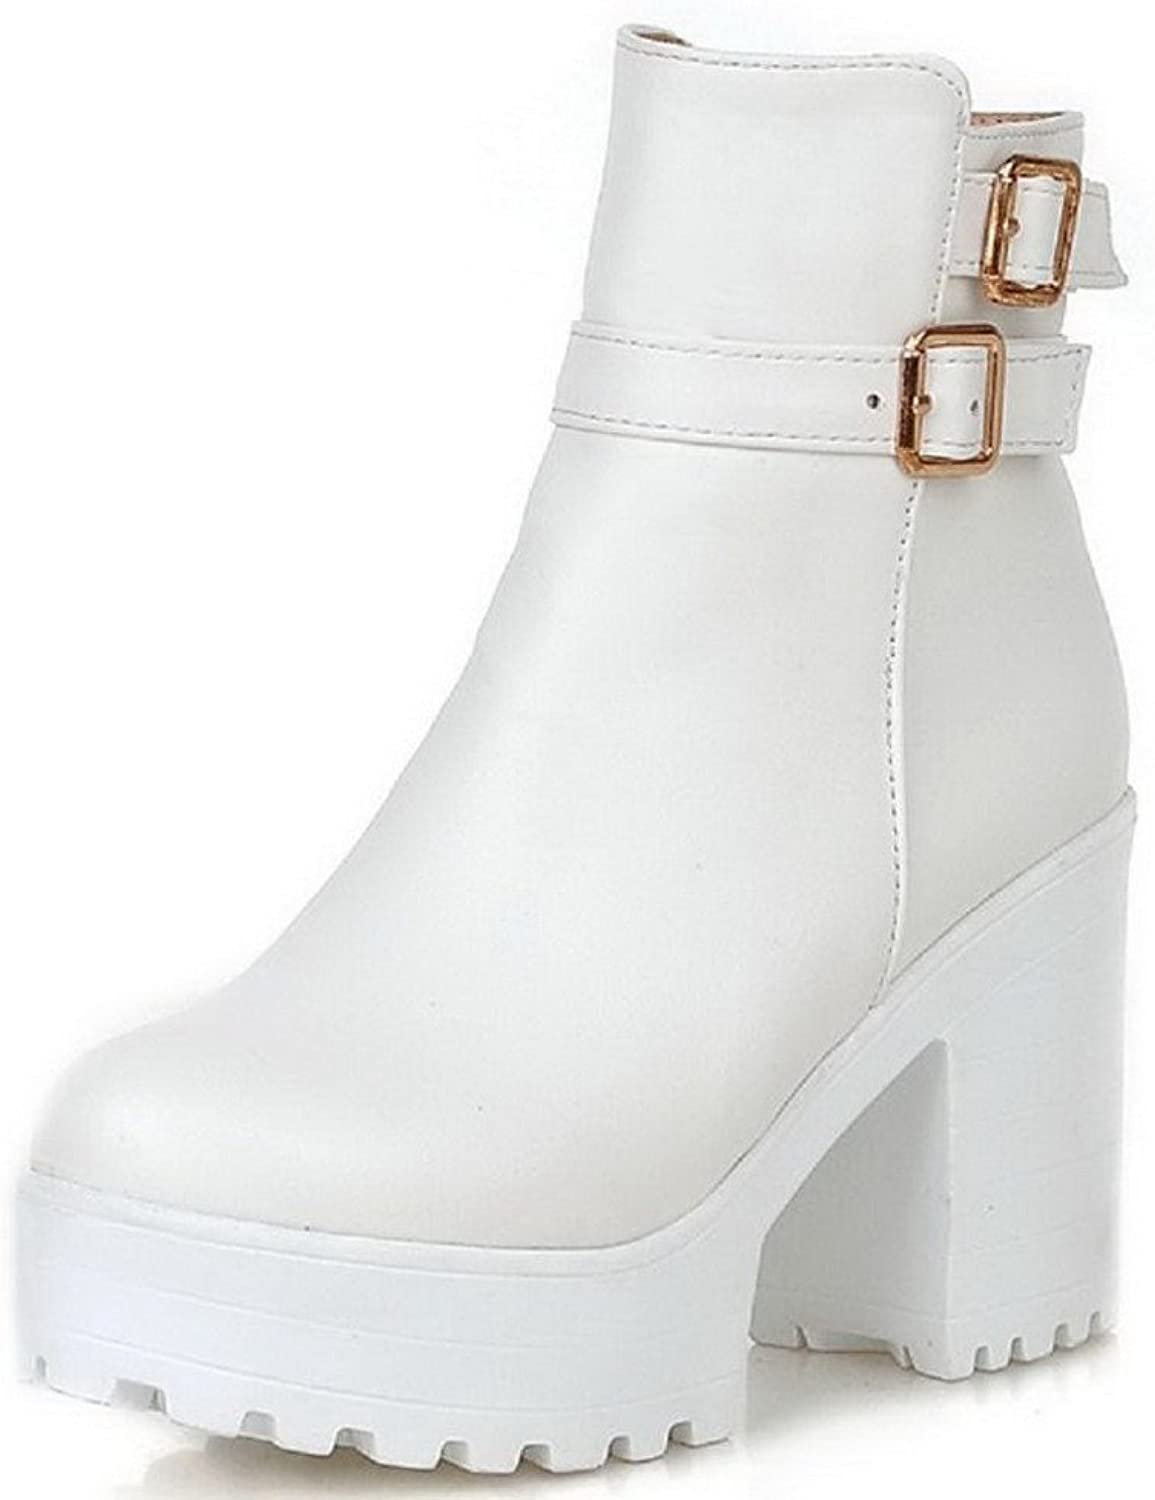 AmoonyFashion Women's Low Top Zipper Soft Material High-Heels Round Closed Toe Boots